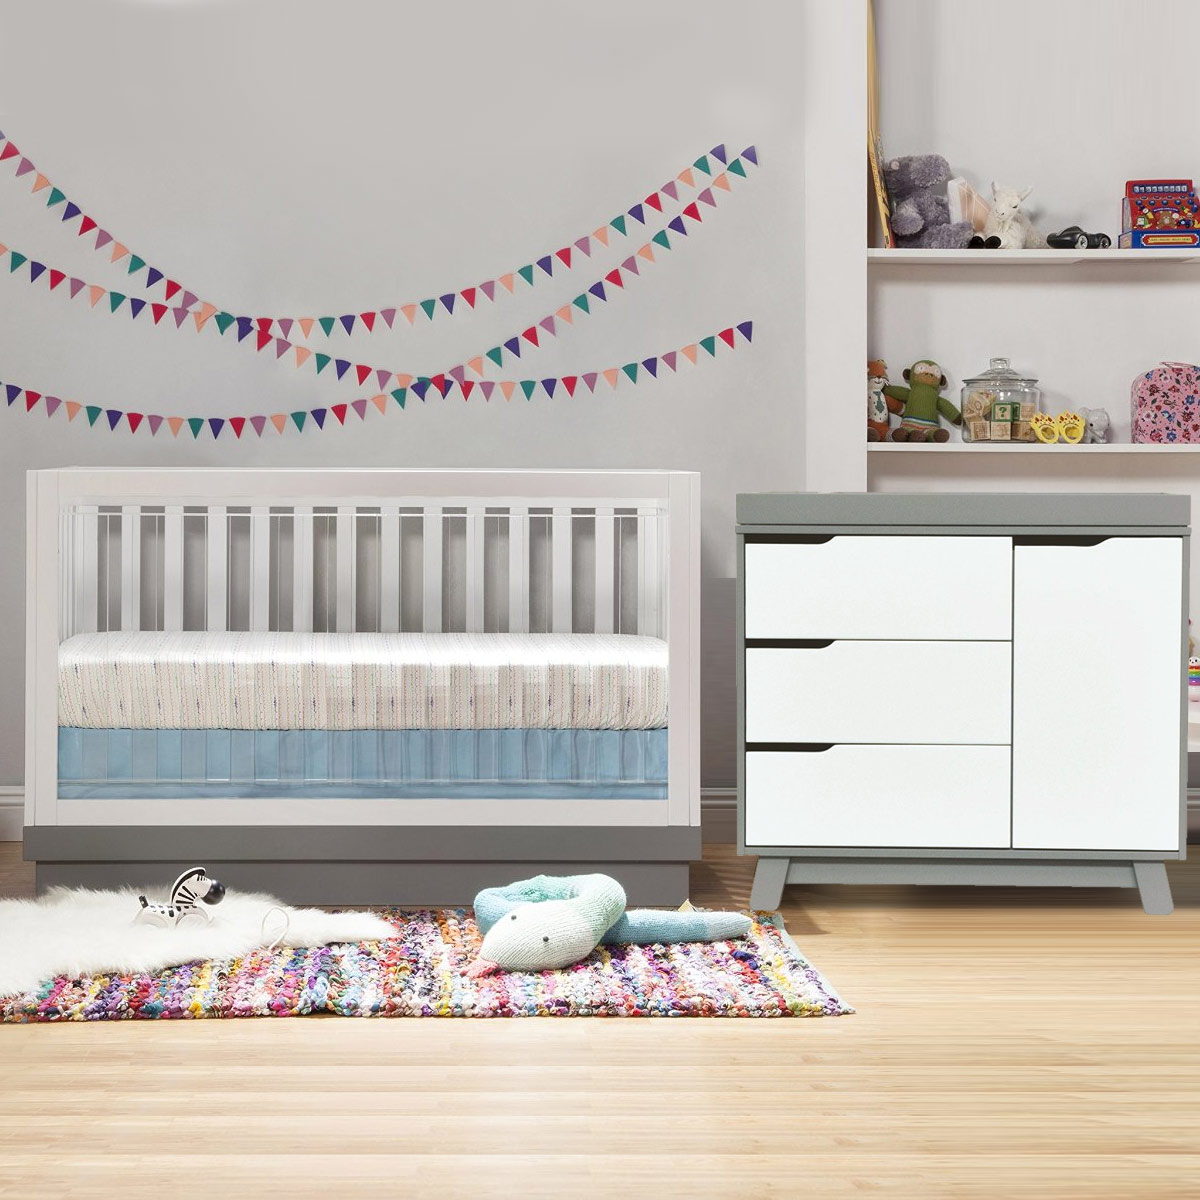 Babyletto 2 Piece Nursery Set Acrylic Harlow 3 In 1 Convertible Crib And Hudson Changer Dresser Two Tone Grey White Free Shipping